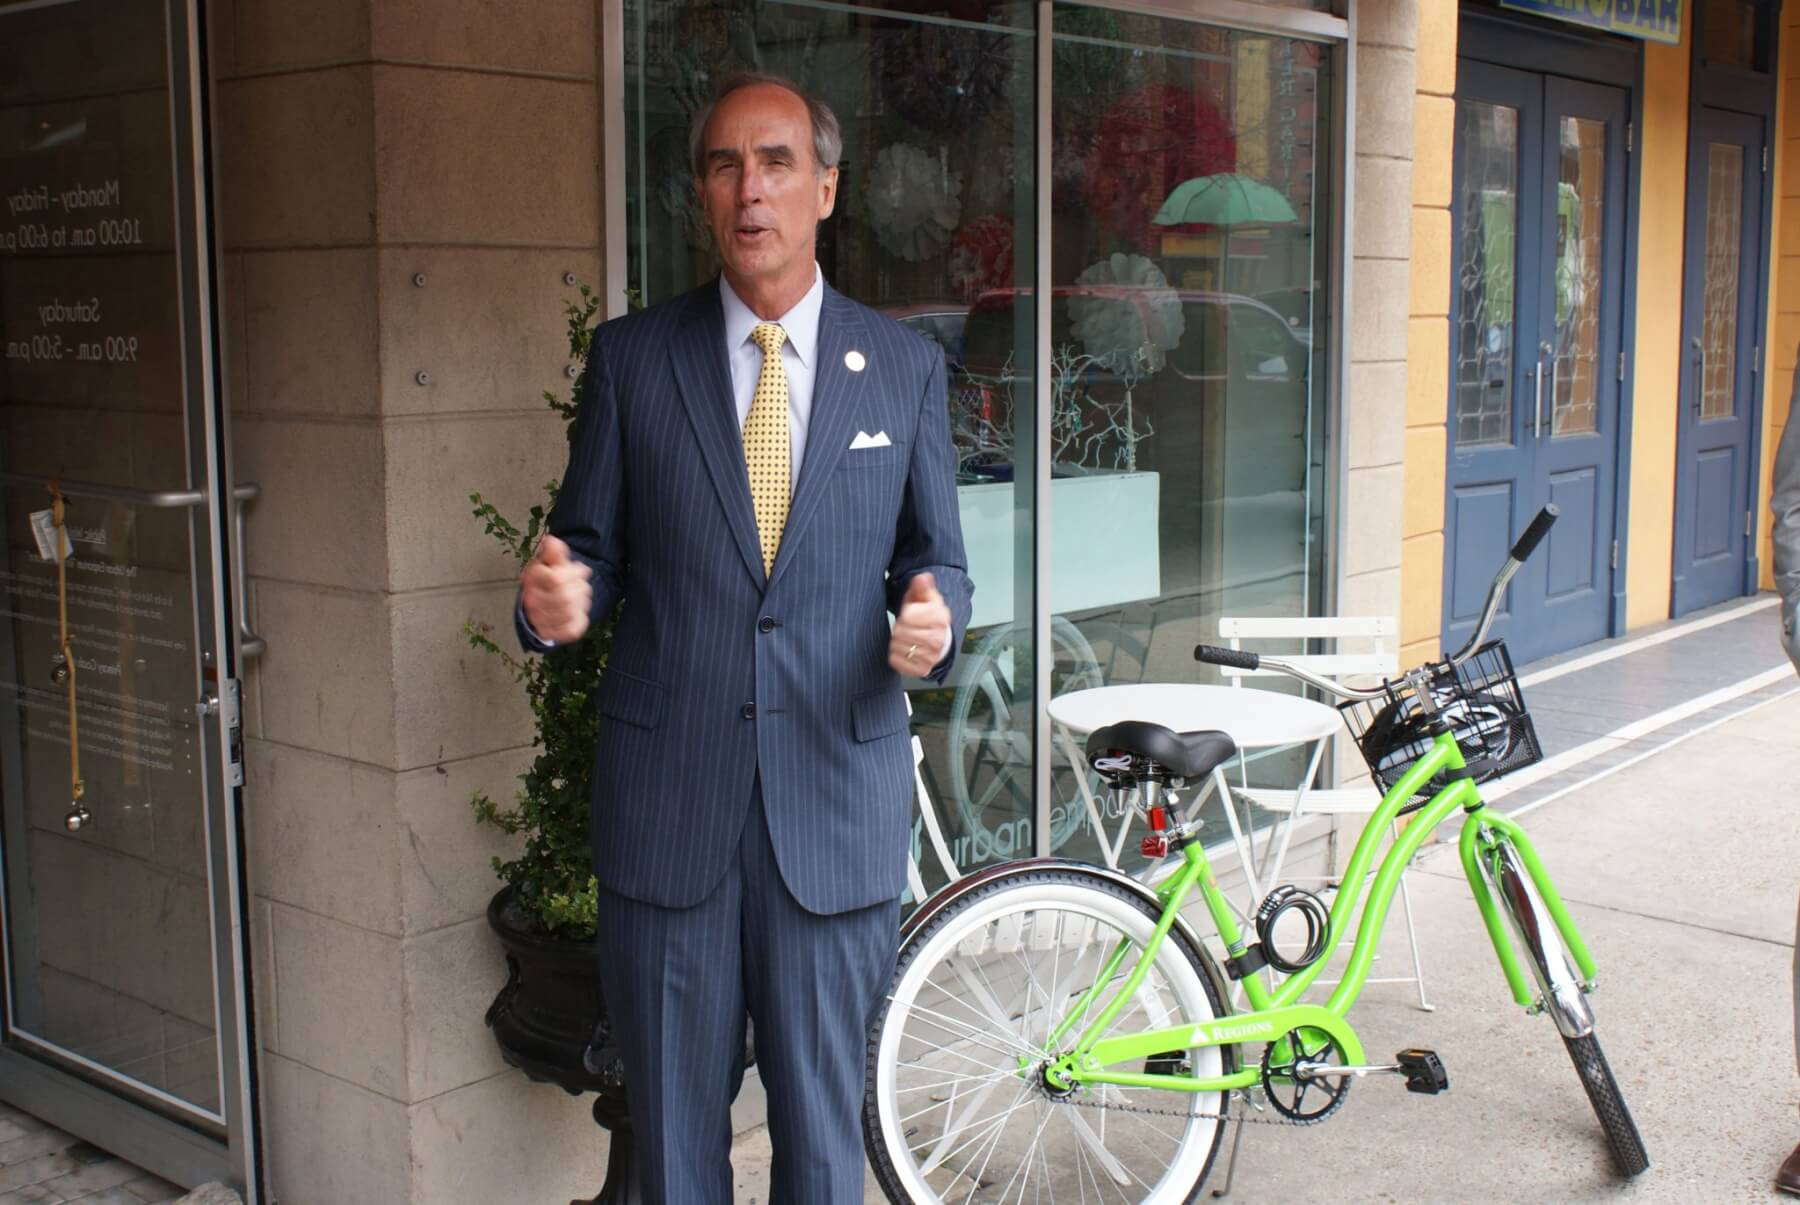 Mayor helps kick off Regions, DMA bike rental program